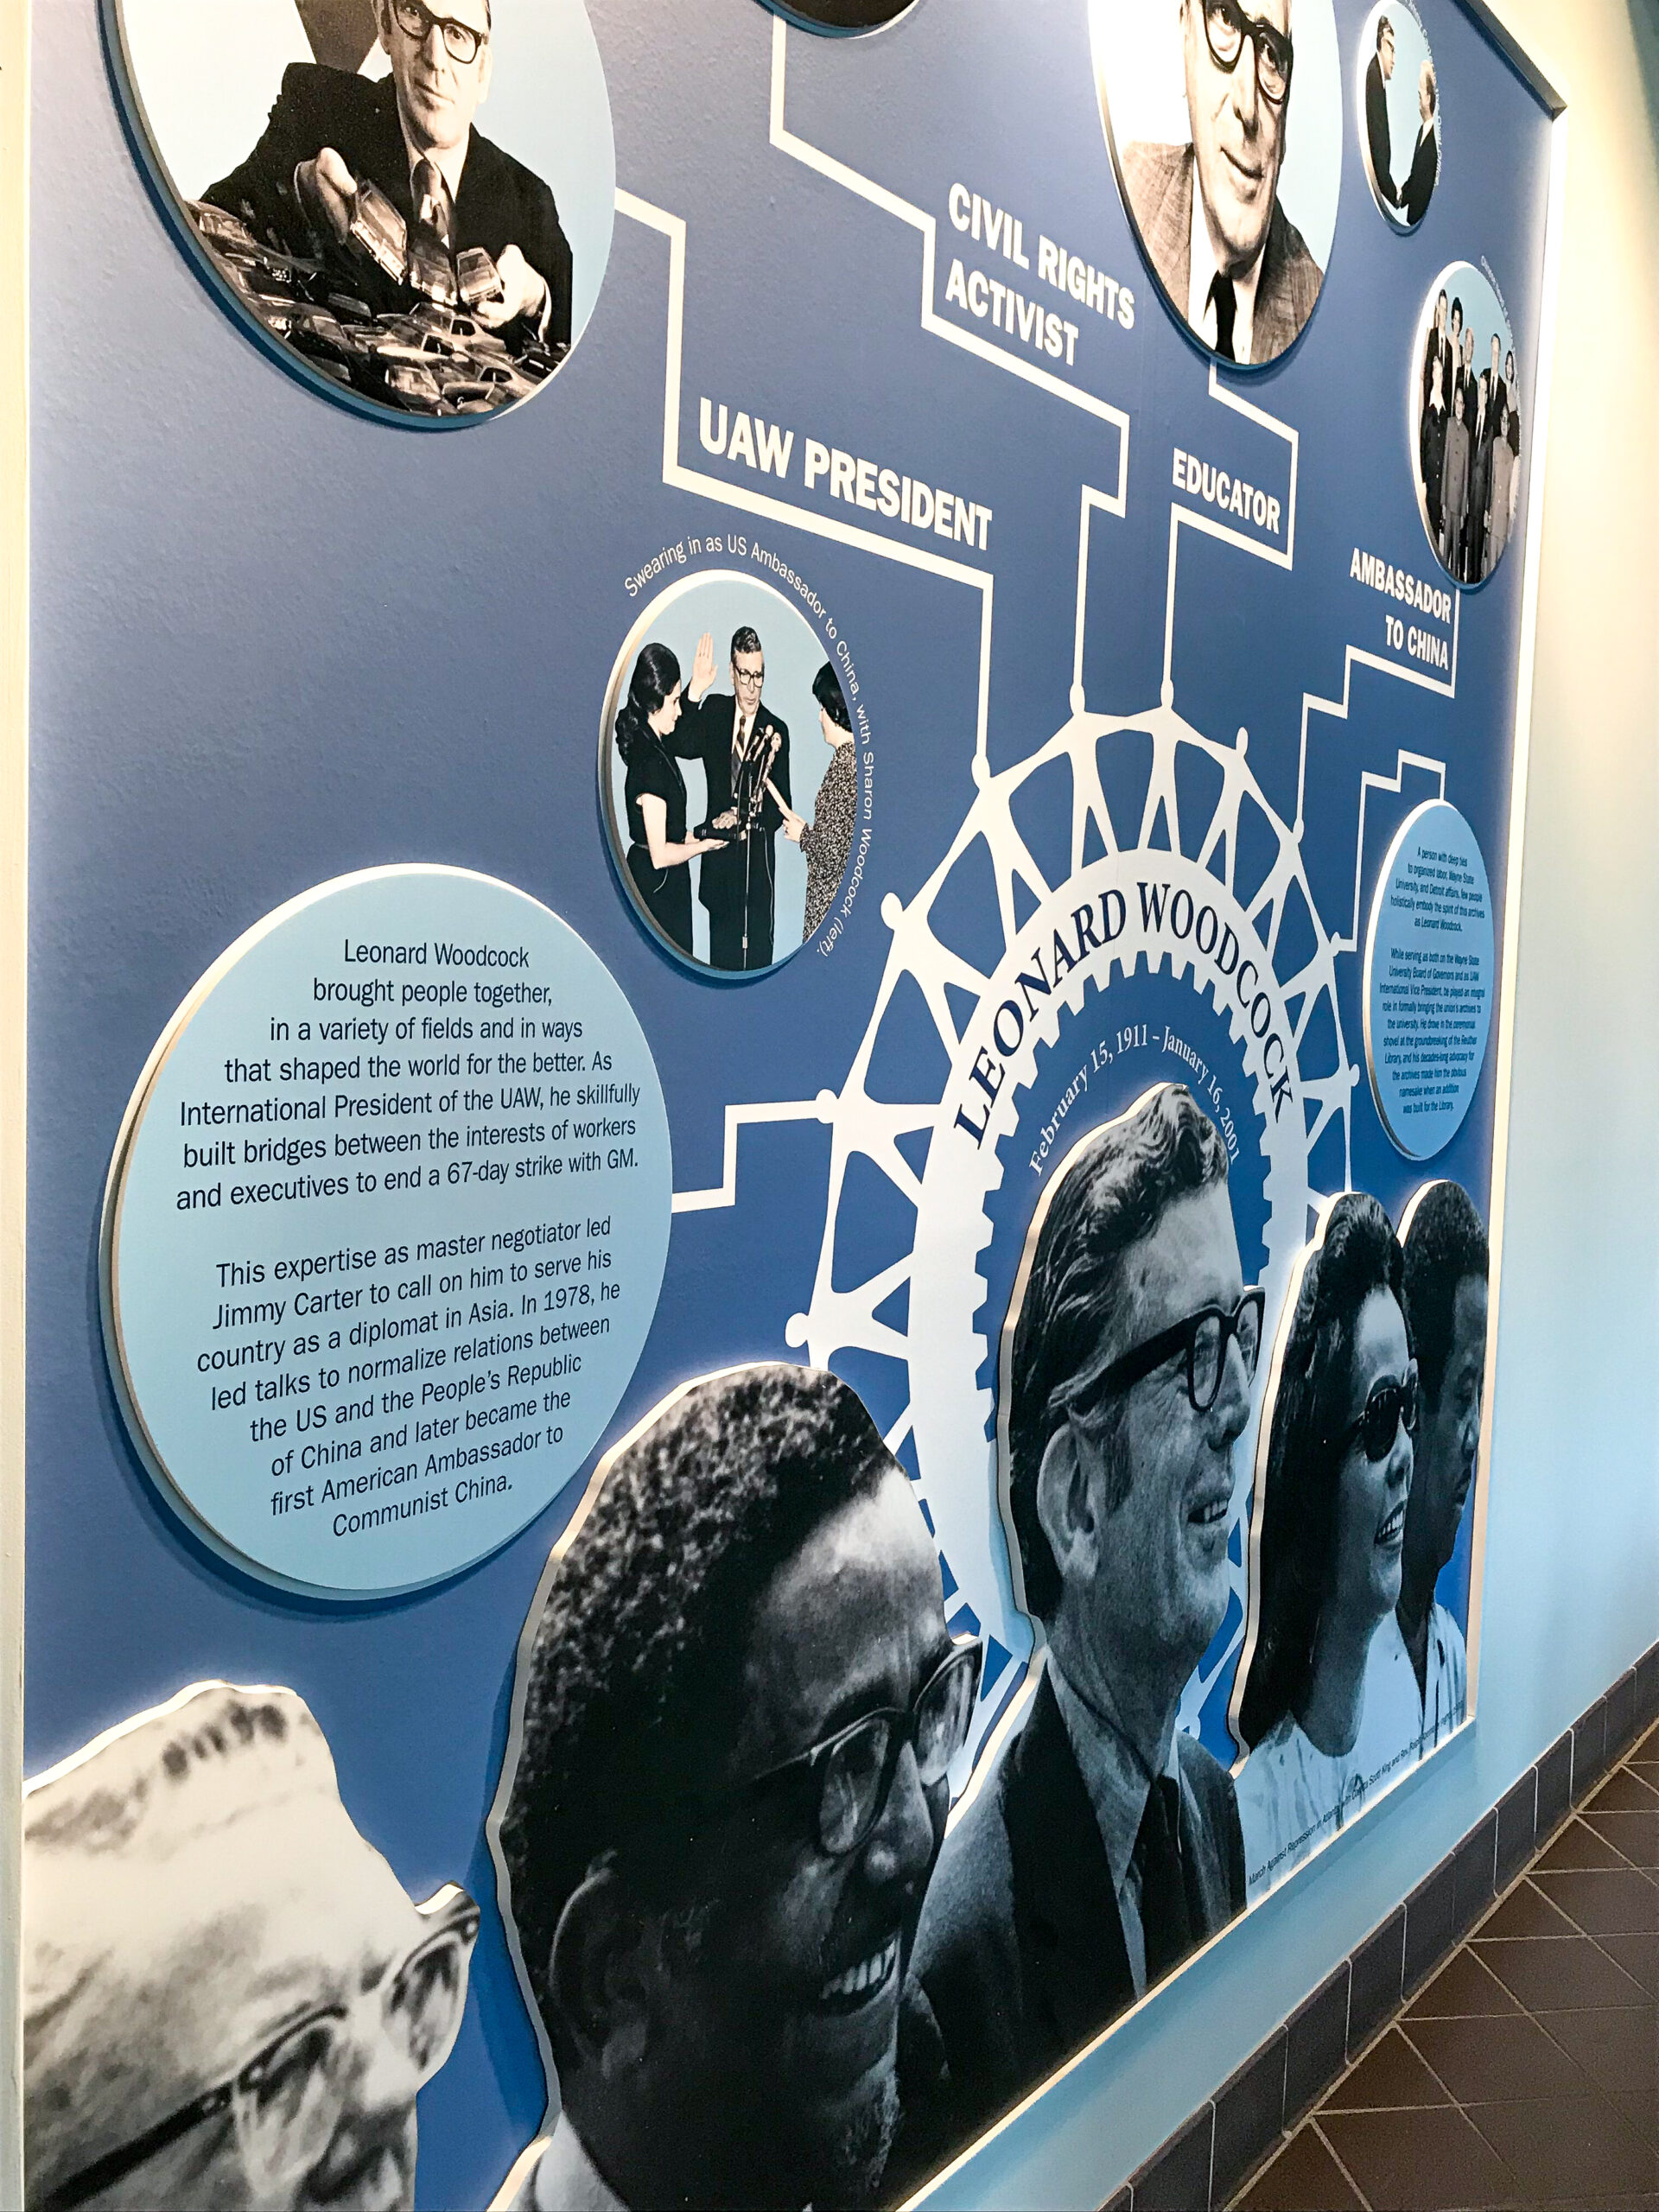 Side view showing the multimedia graphic elements of the Leonard Woodcock wall.